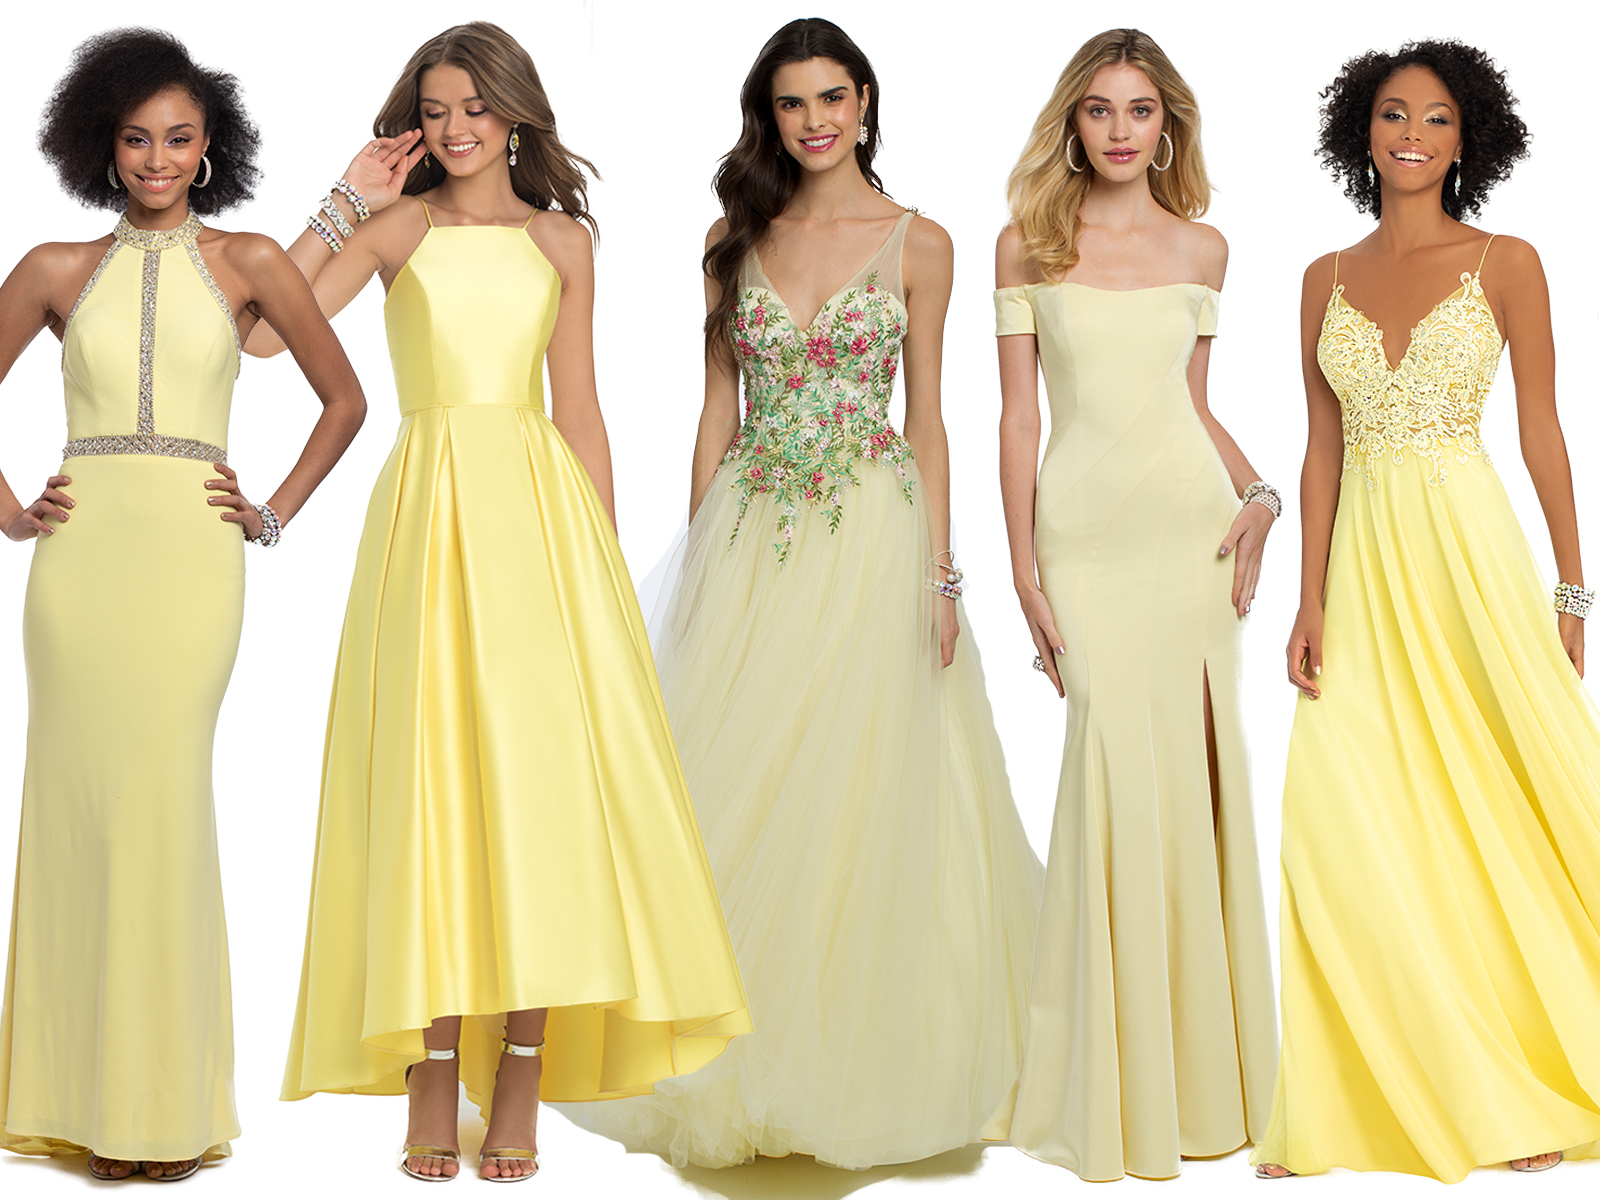 Yellow Prom Dresses by Camille La Vie